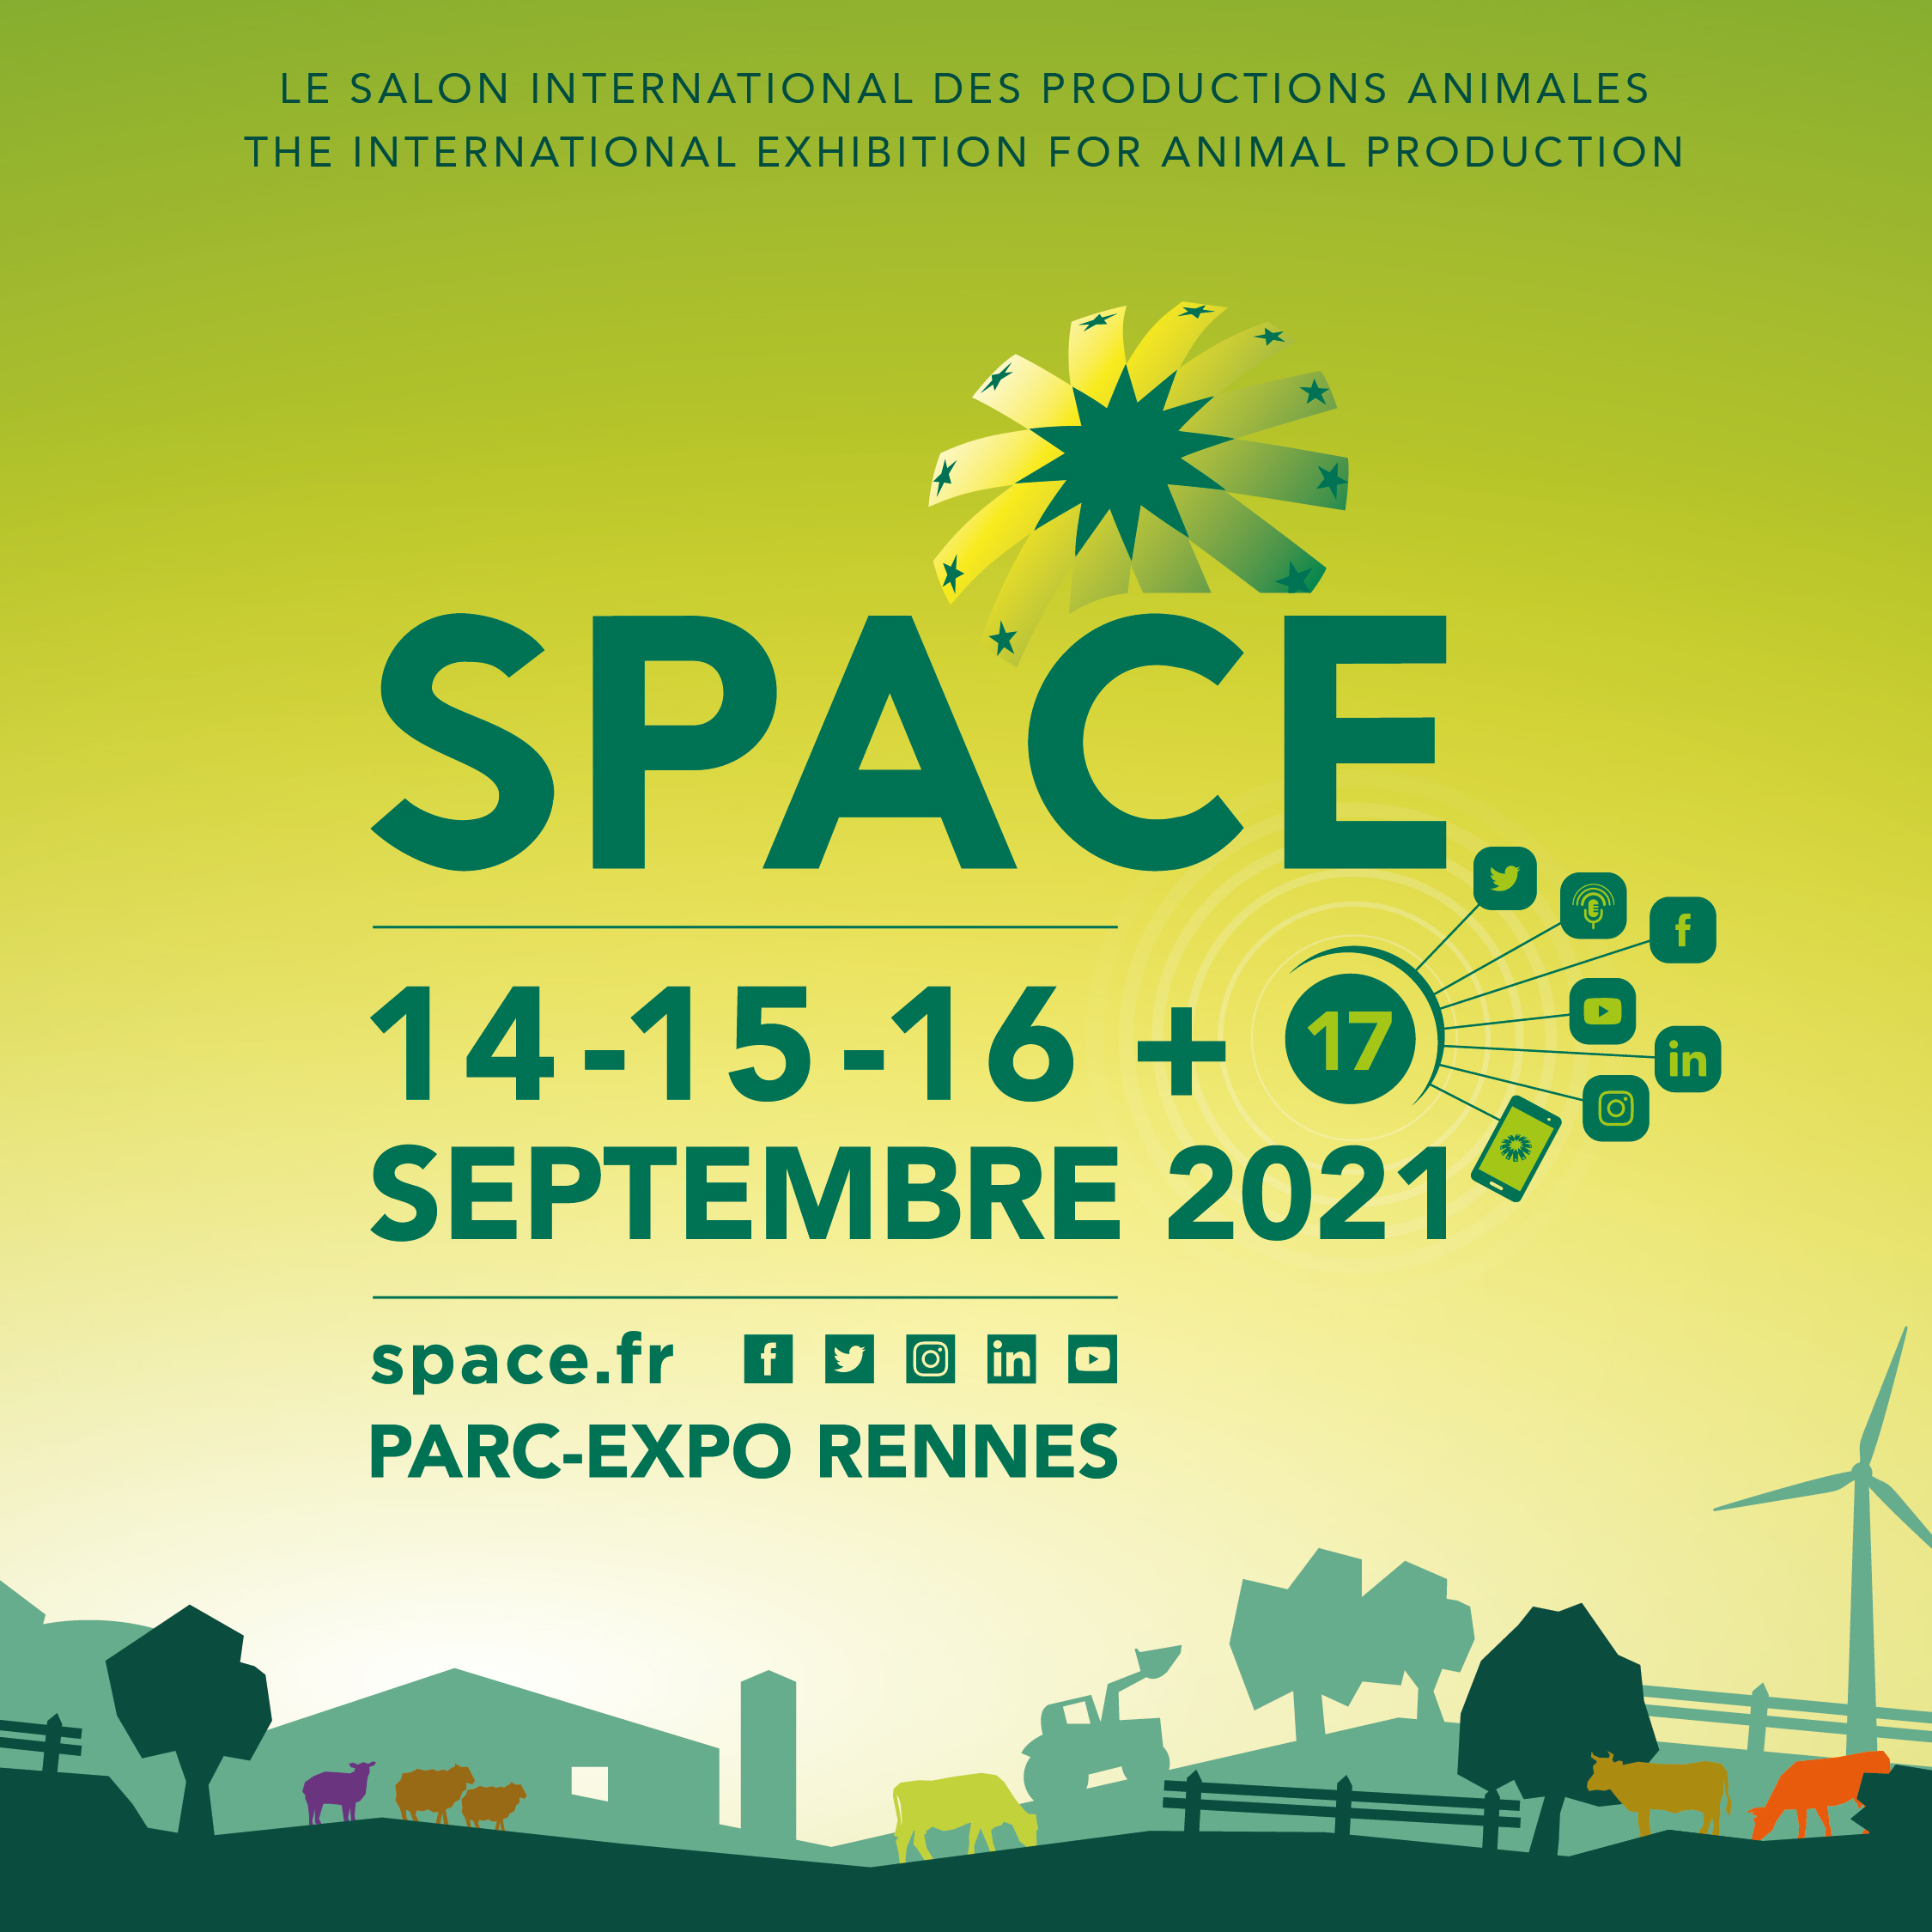 SPACE 2021